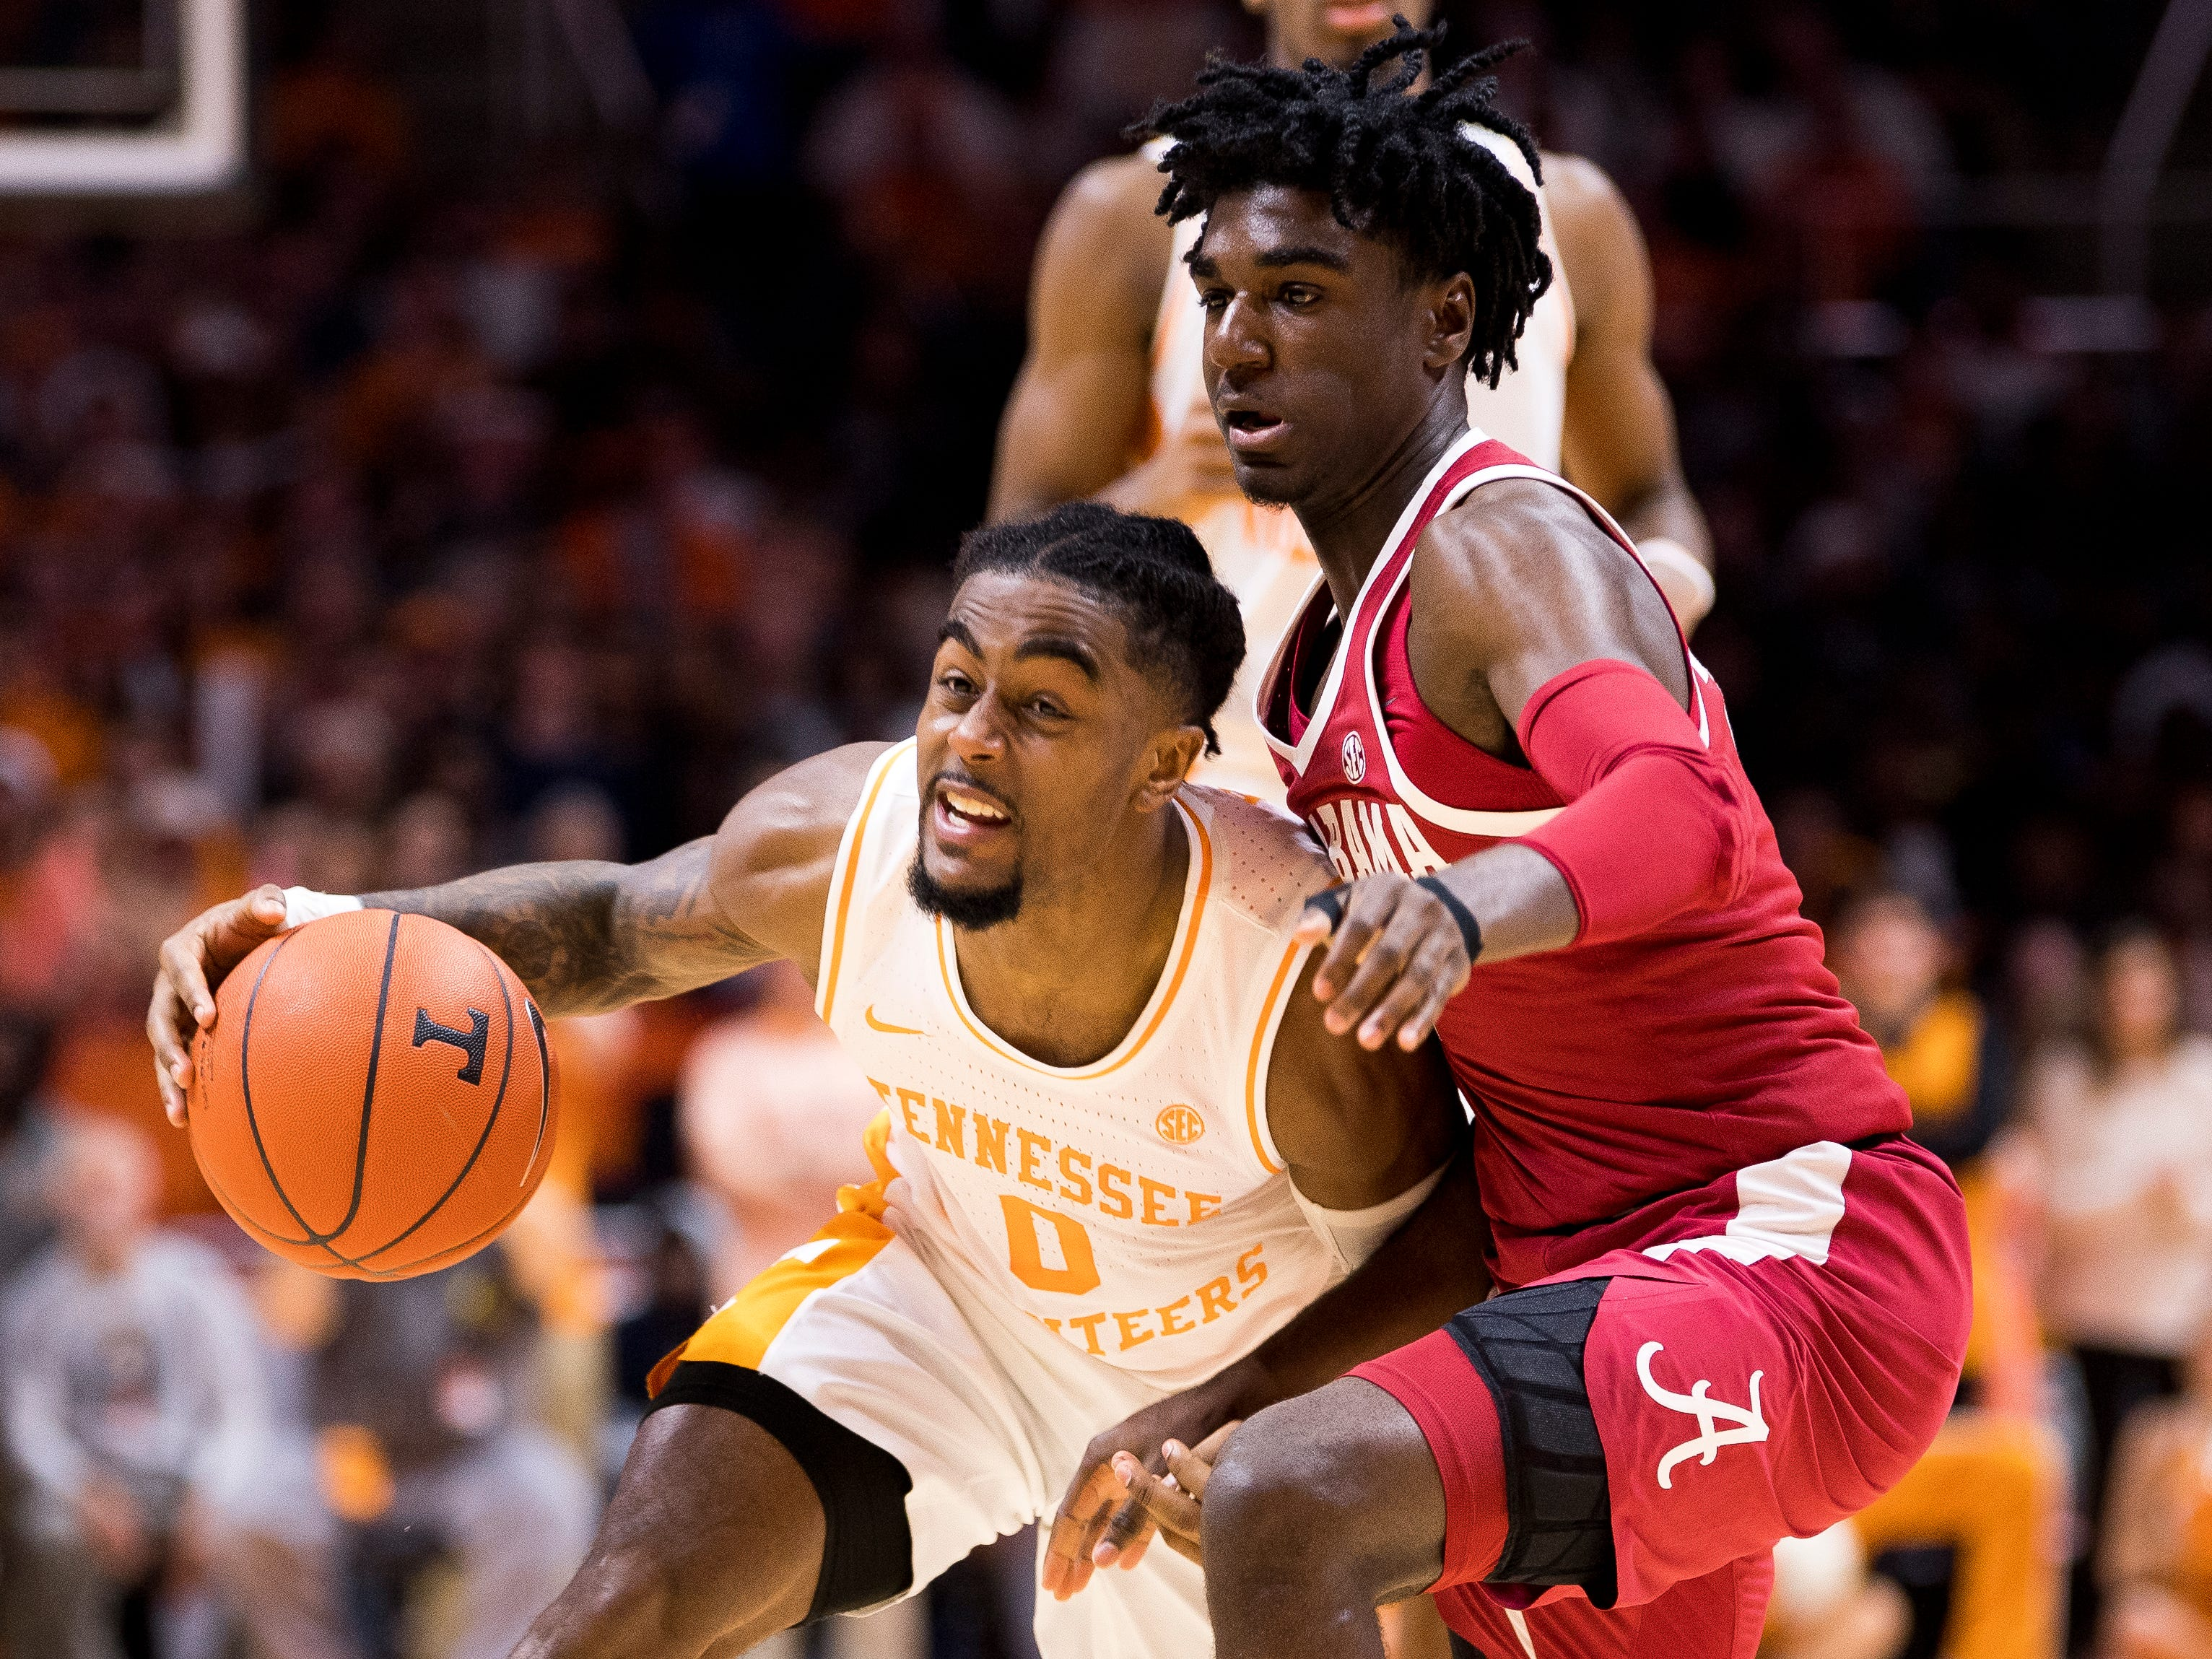 Tennessee guard Jordan Bone (0) moves down court during the first half of Tennessee's home SEC conference game against Alabama at Thompson-Boling Arena in Knoxville on Saturday, January 19, 2019.